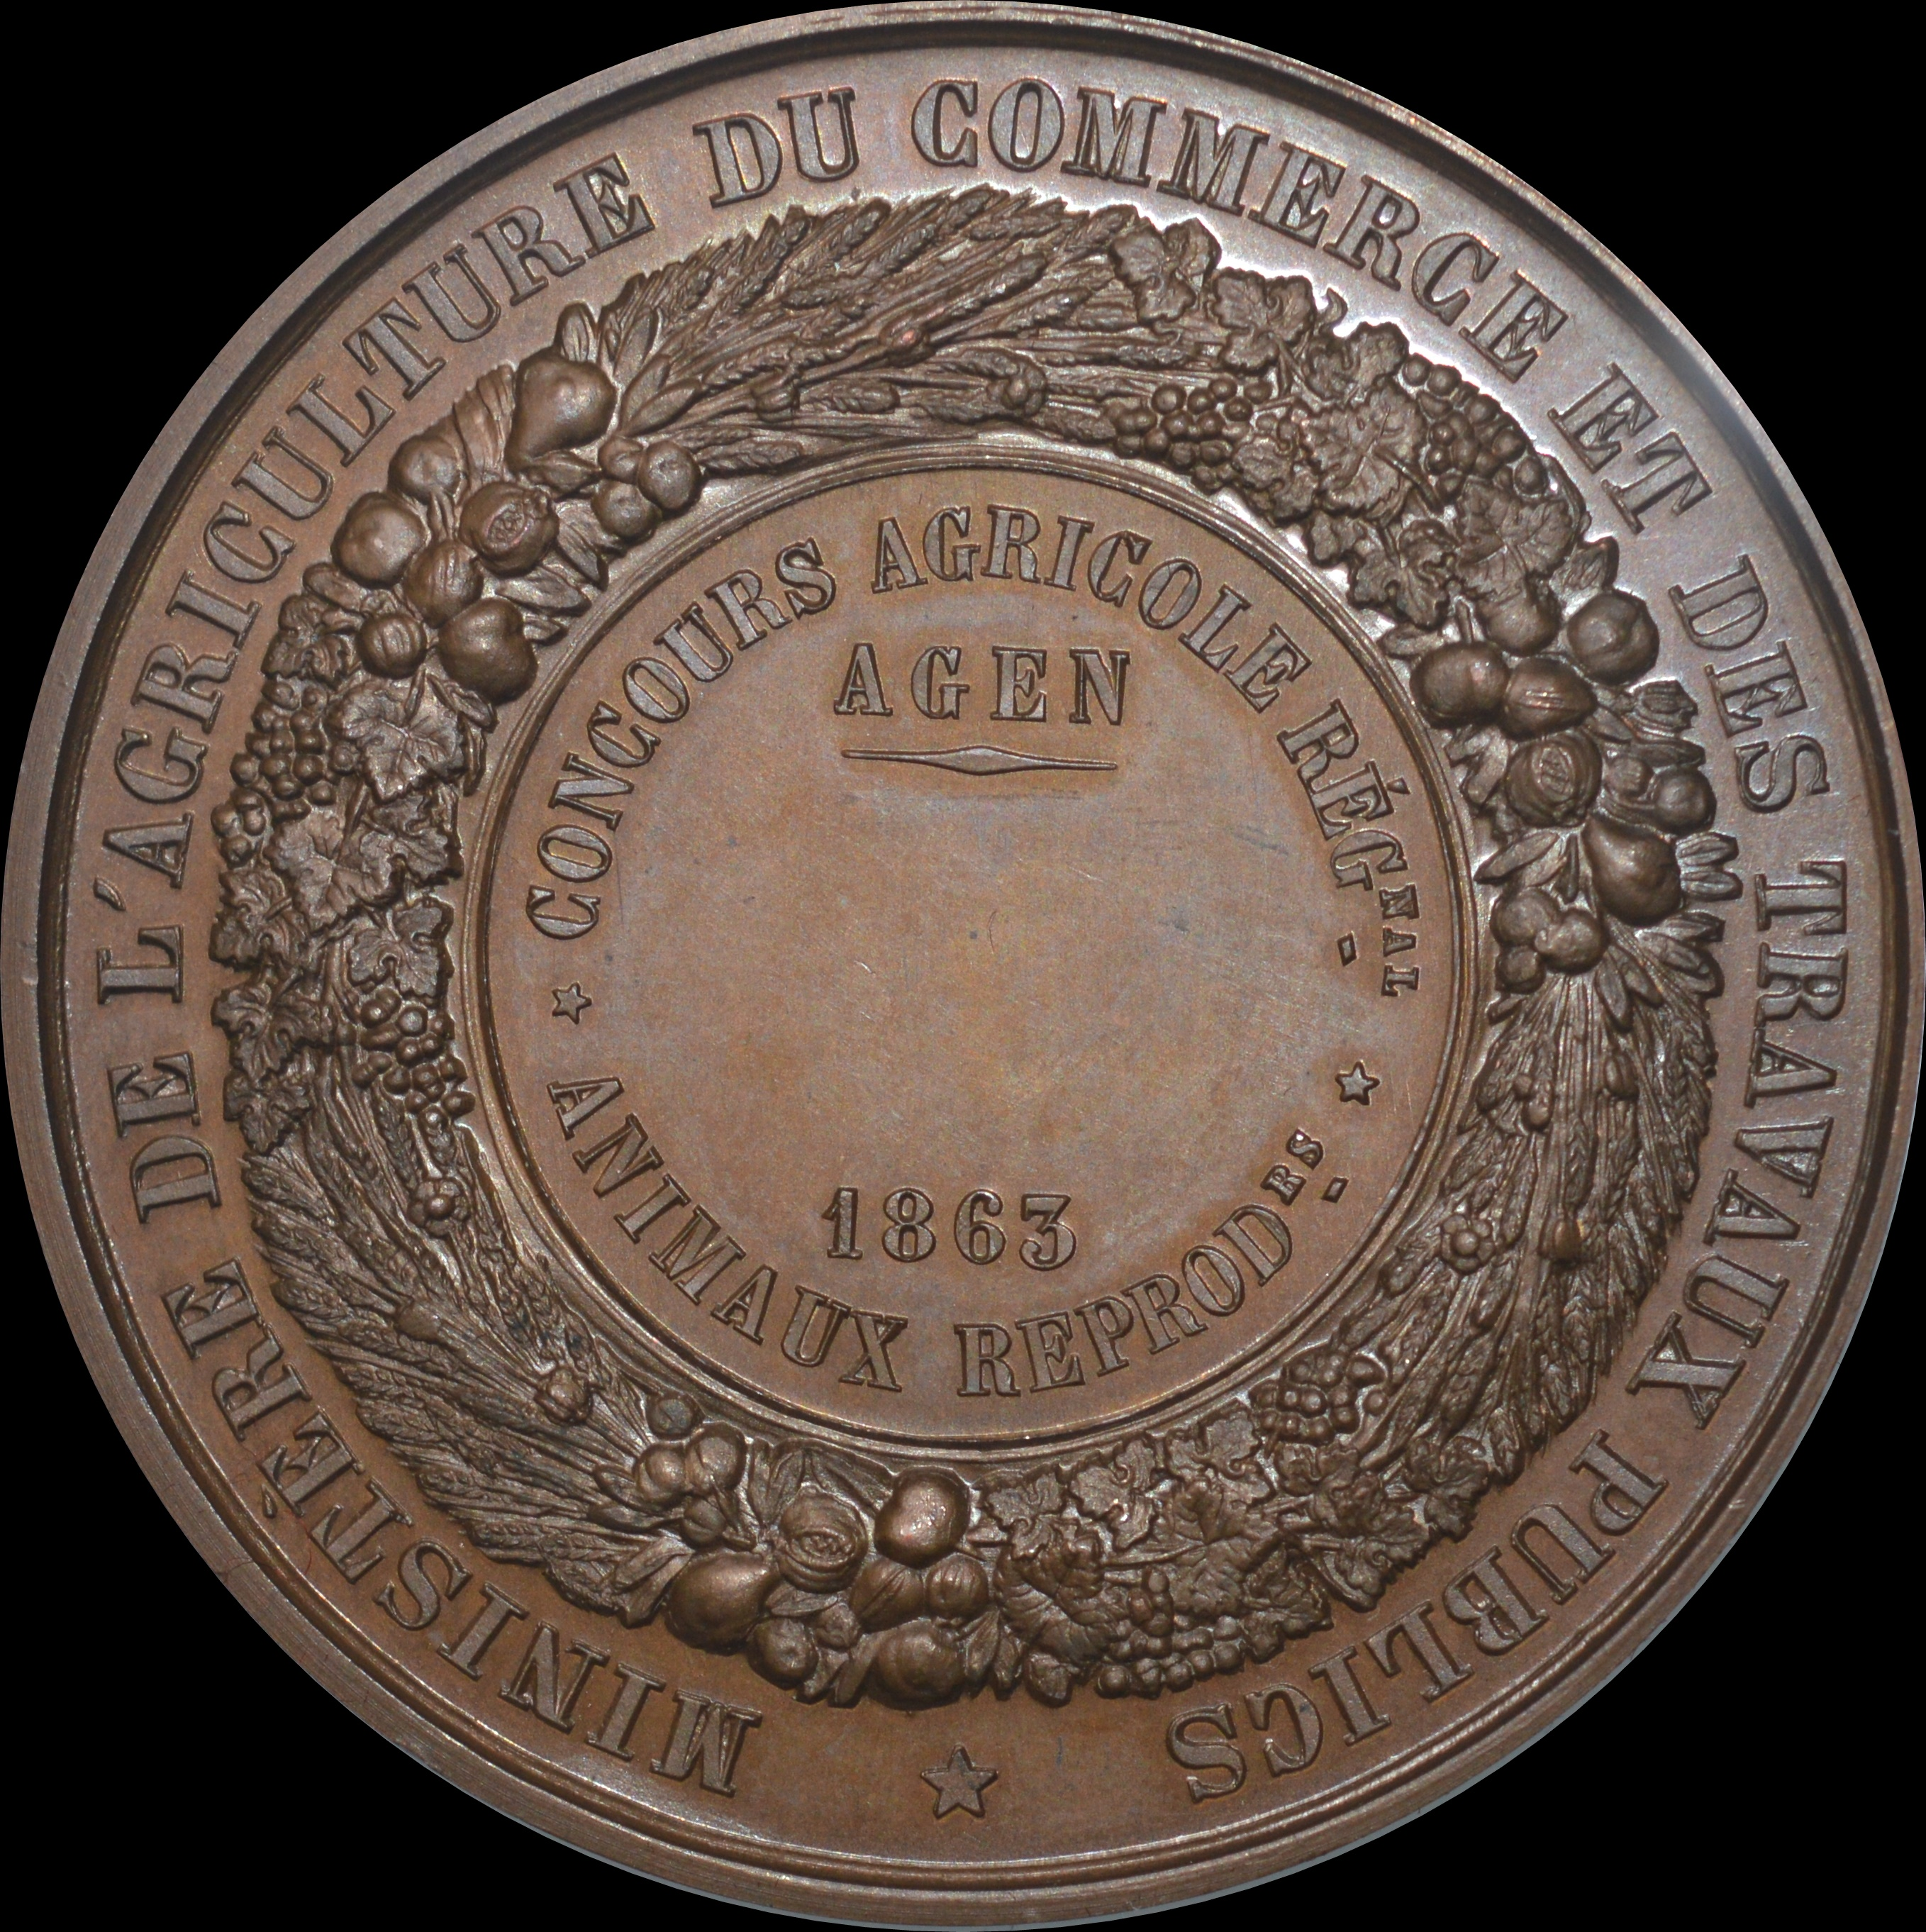 Napoleon III - 1863 Agen Agricultural medal for Breeding Animals. by Caque